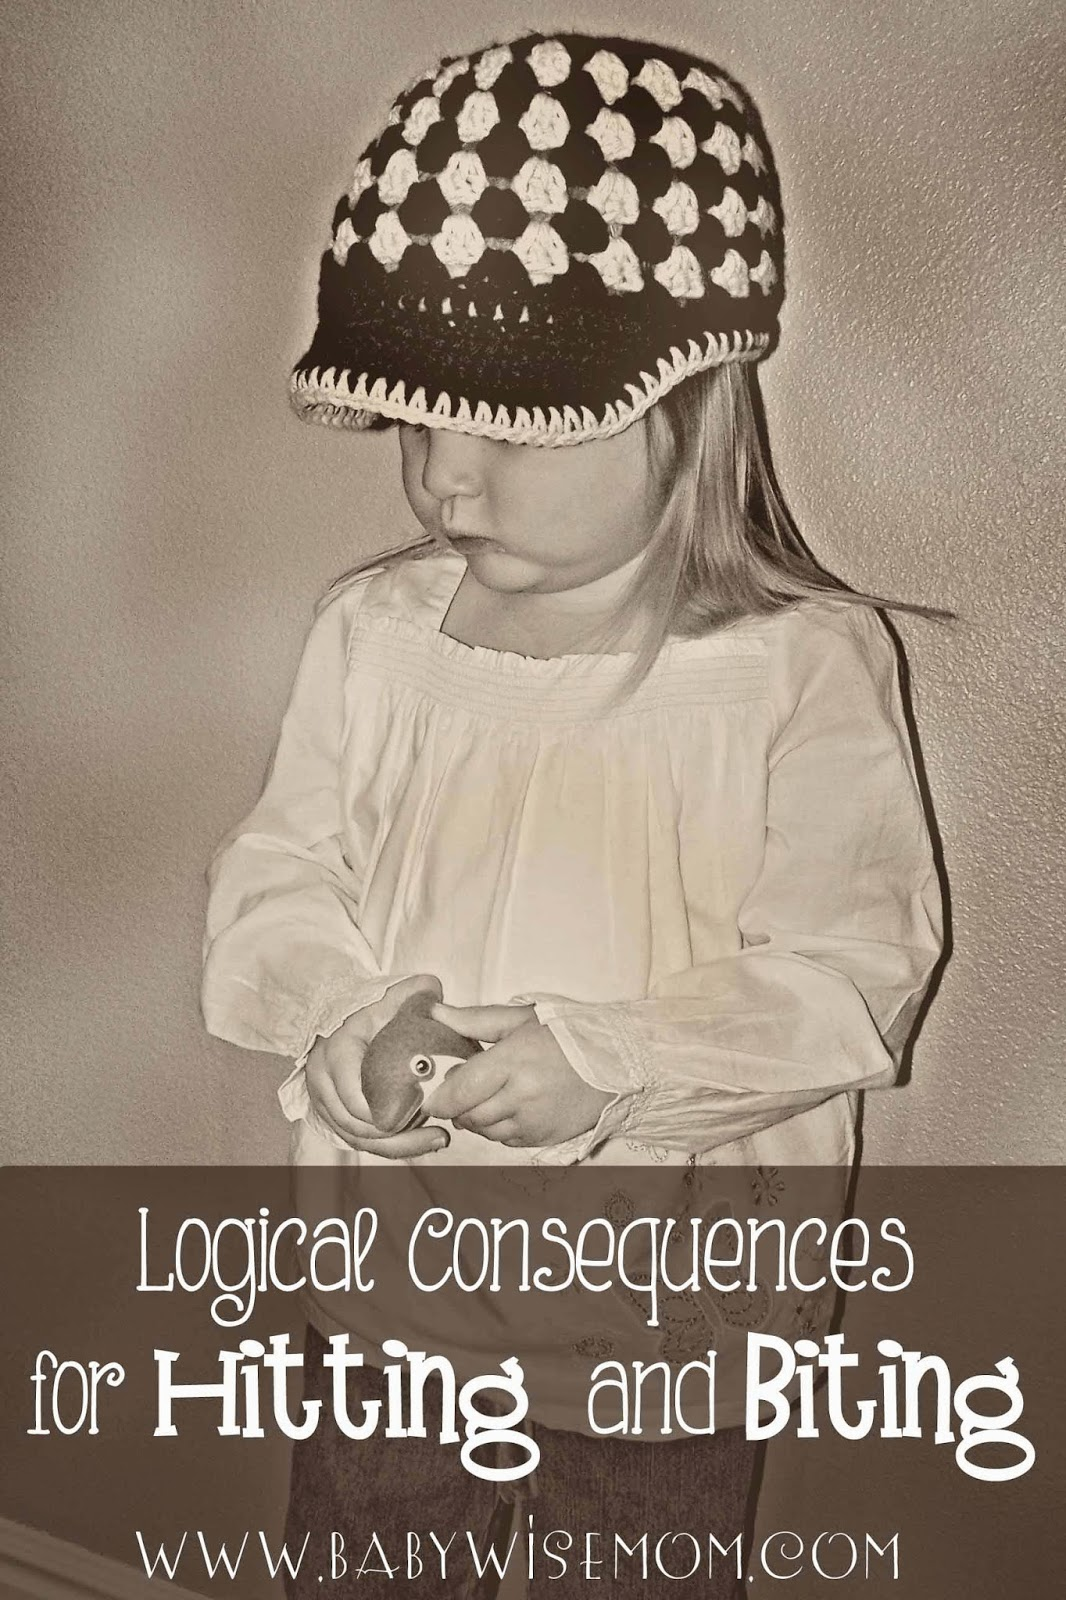 Logical Consequences: Hitting and Biting